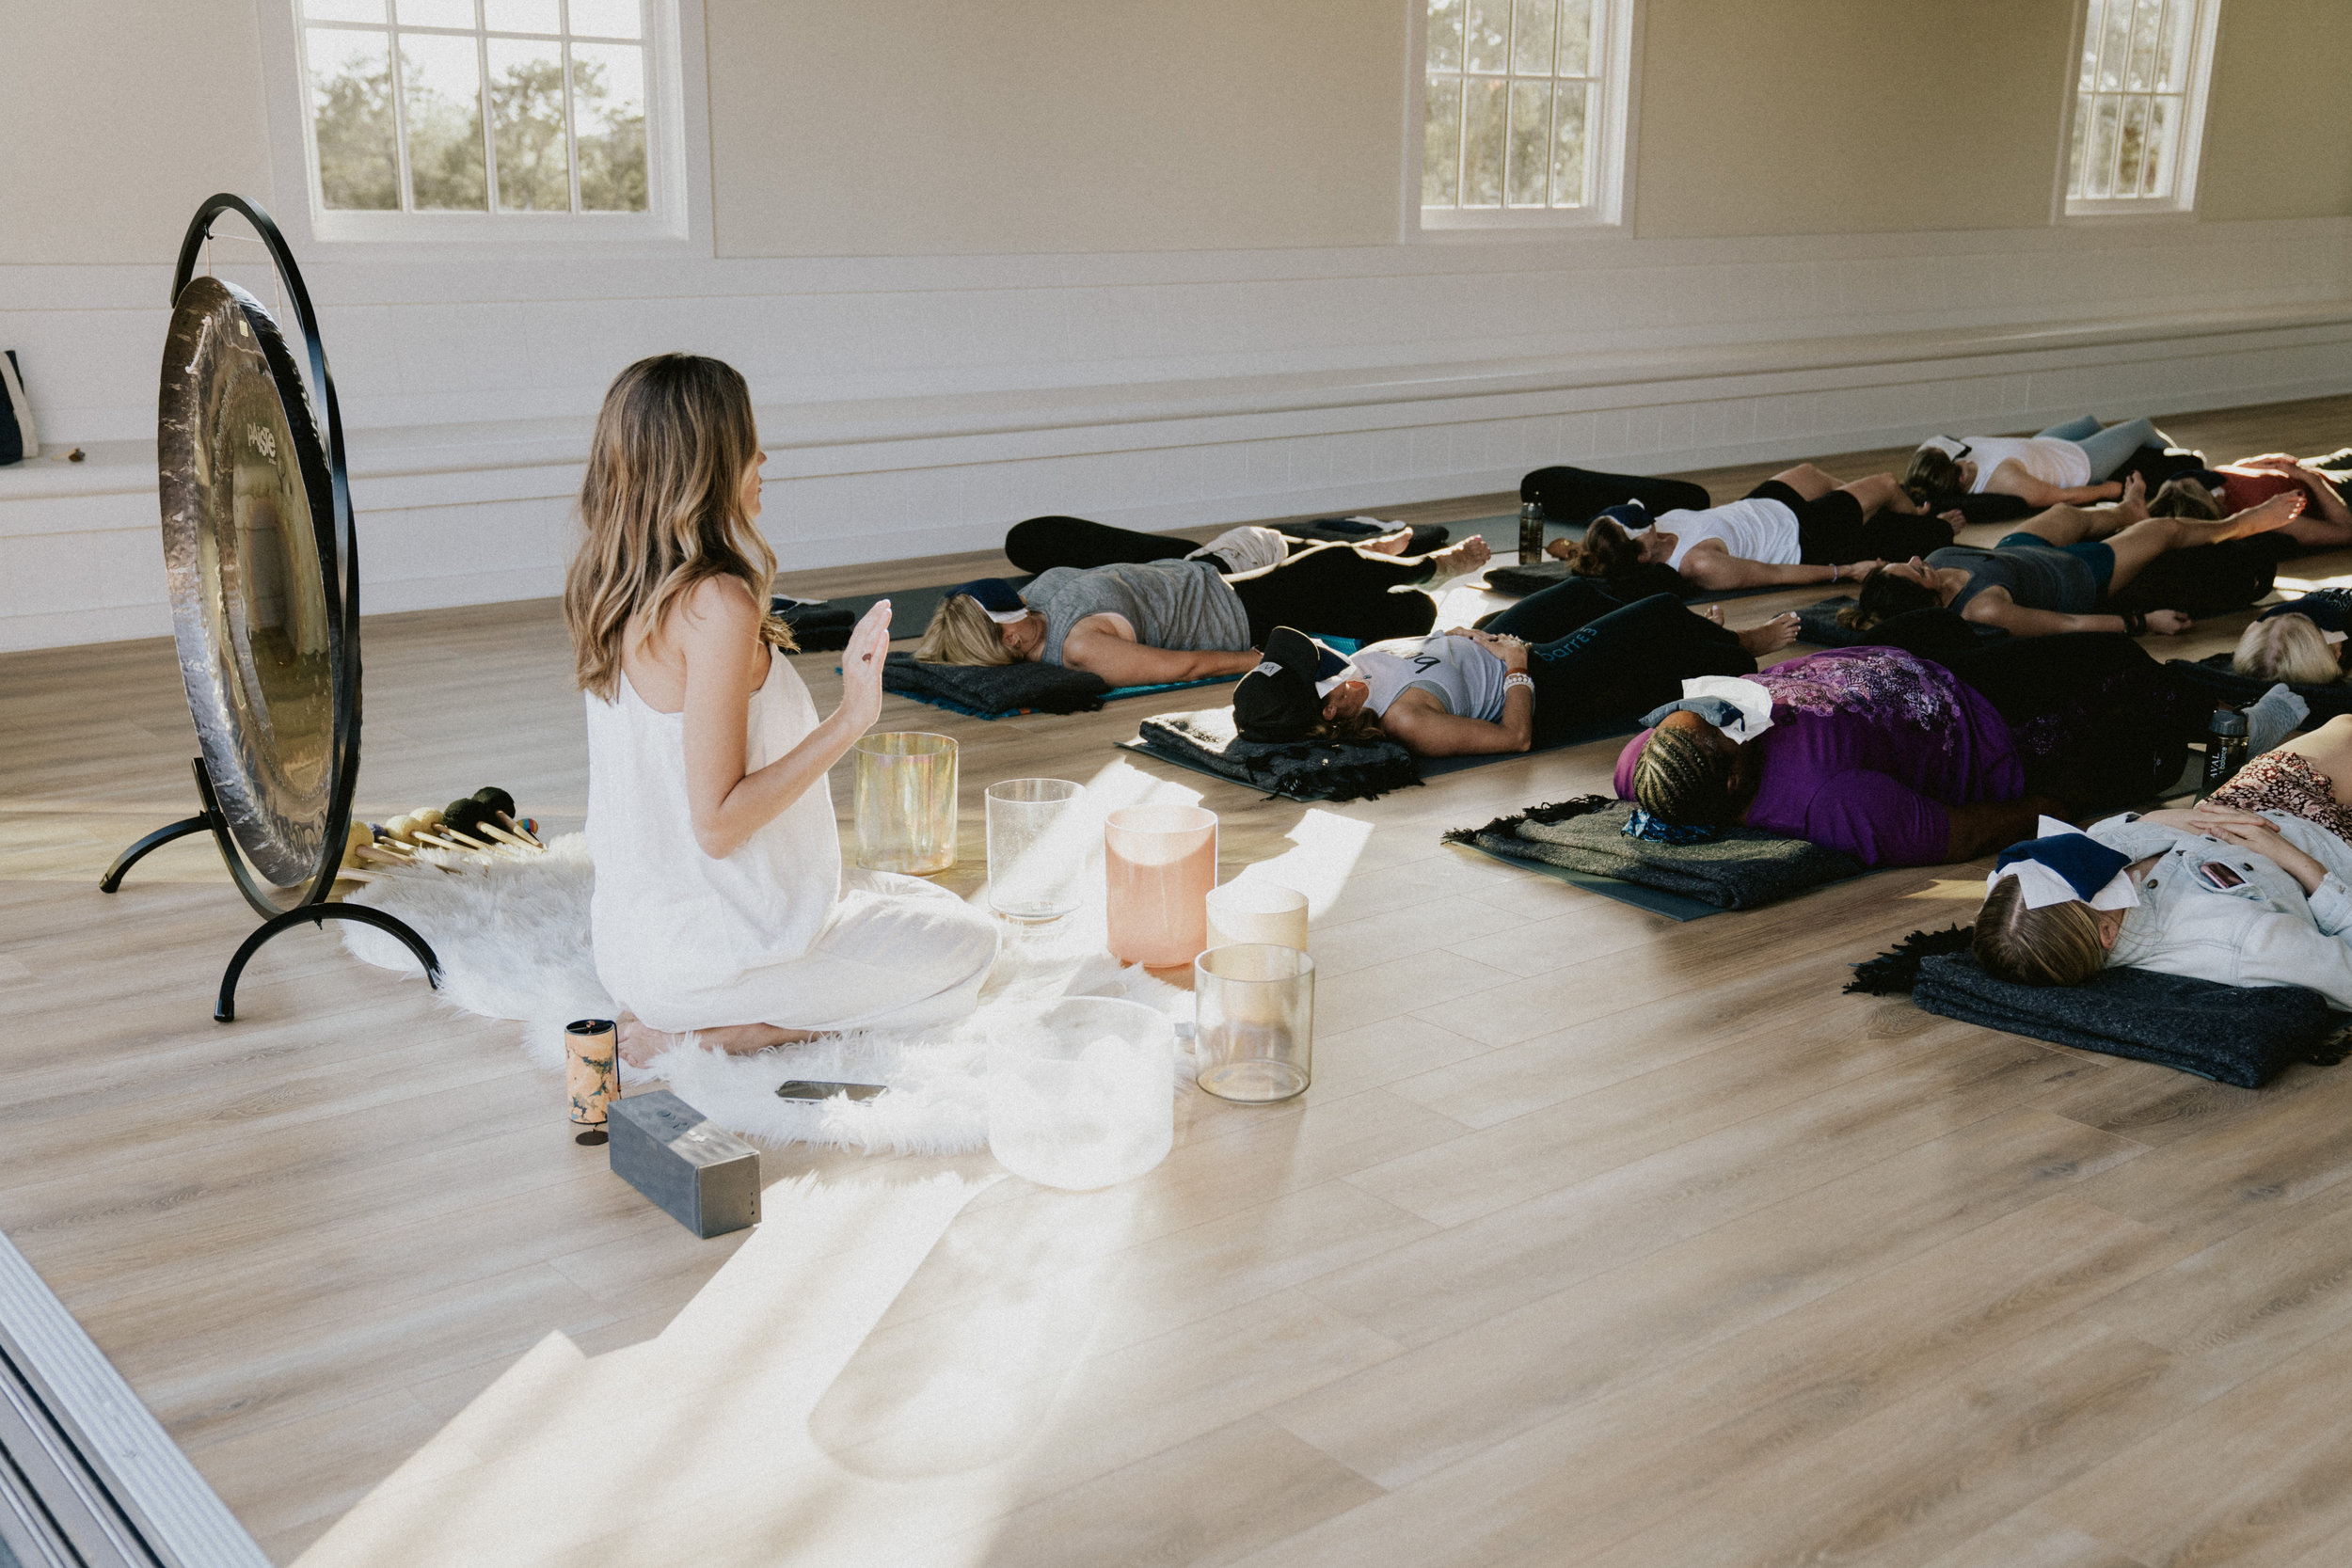 Photo: Jenn Byrne for Barre 3 at Miraval Resort and Spa.